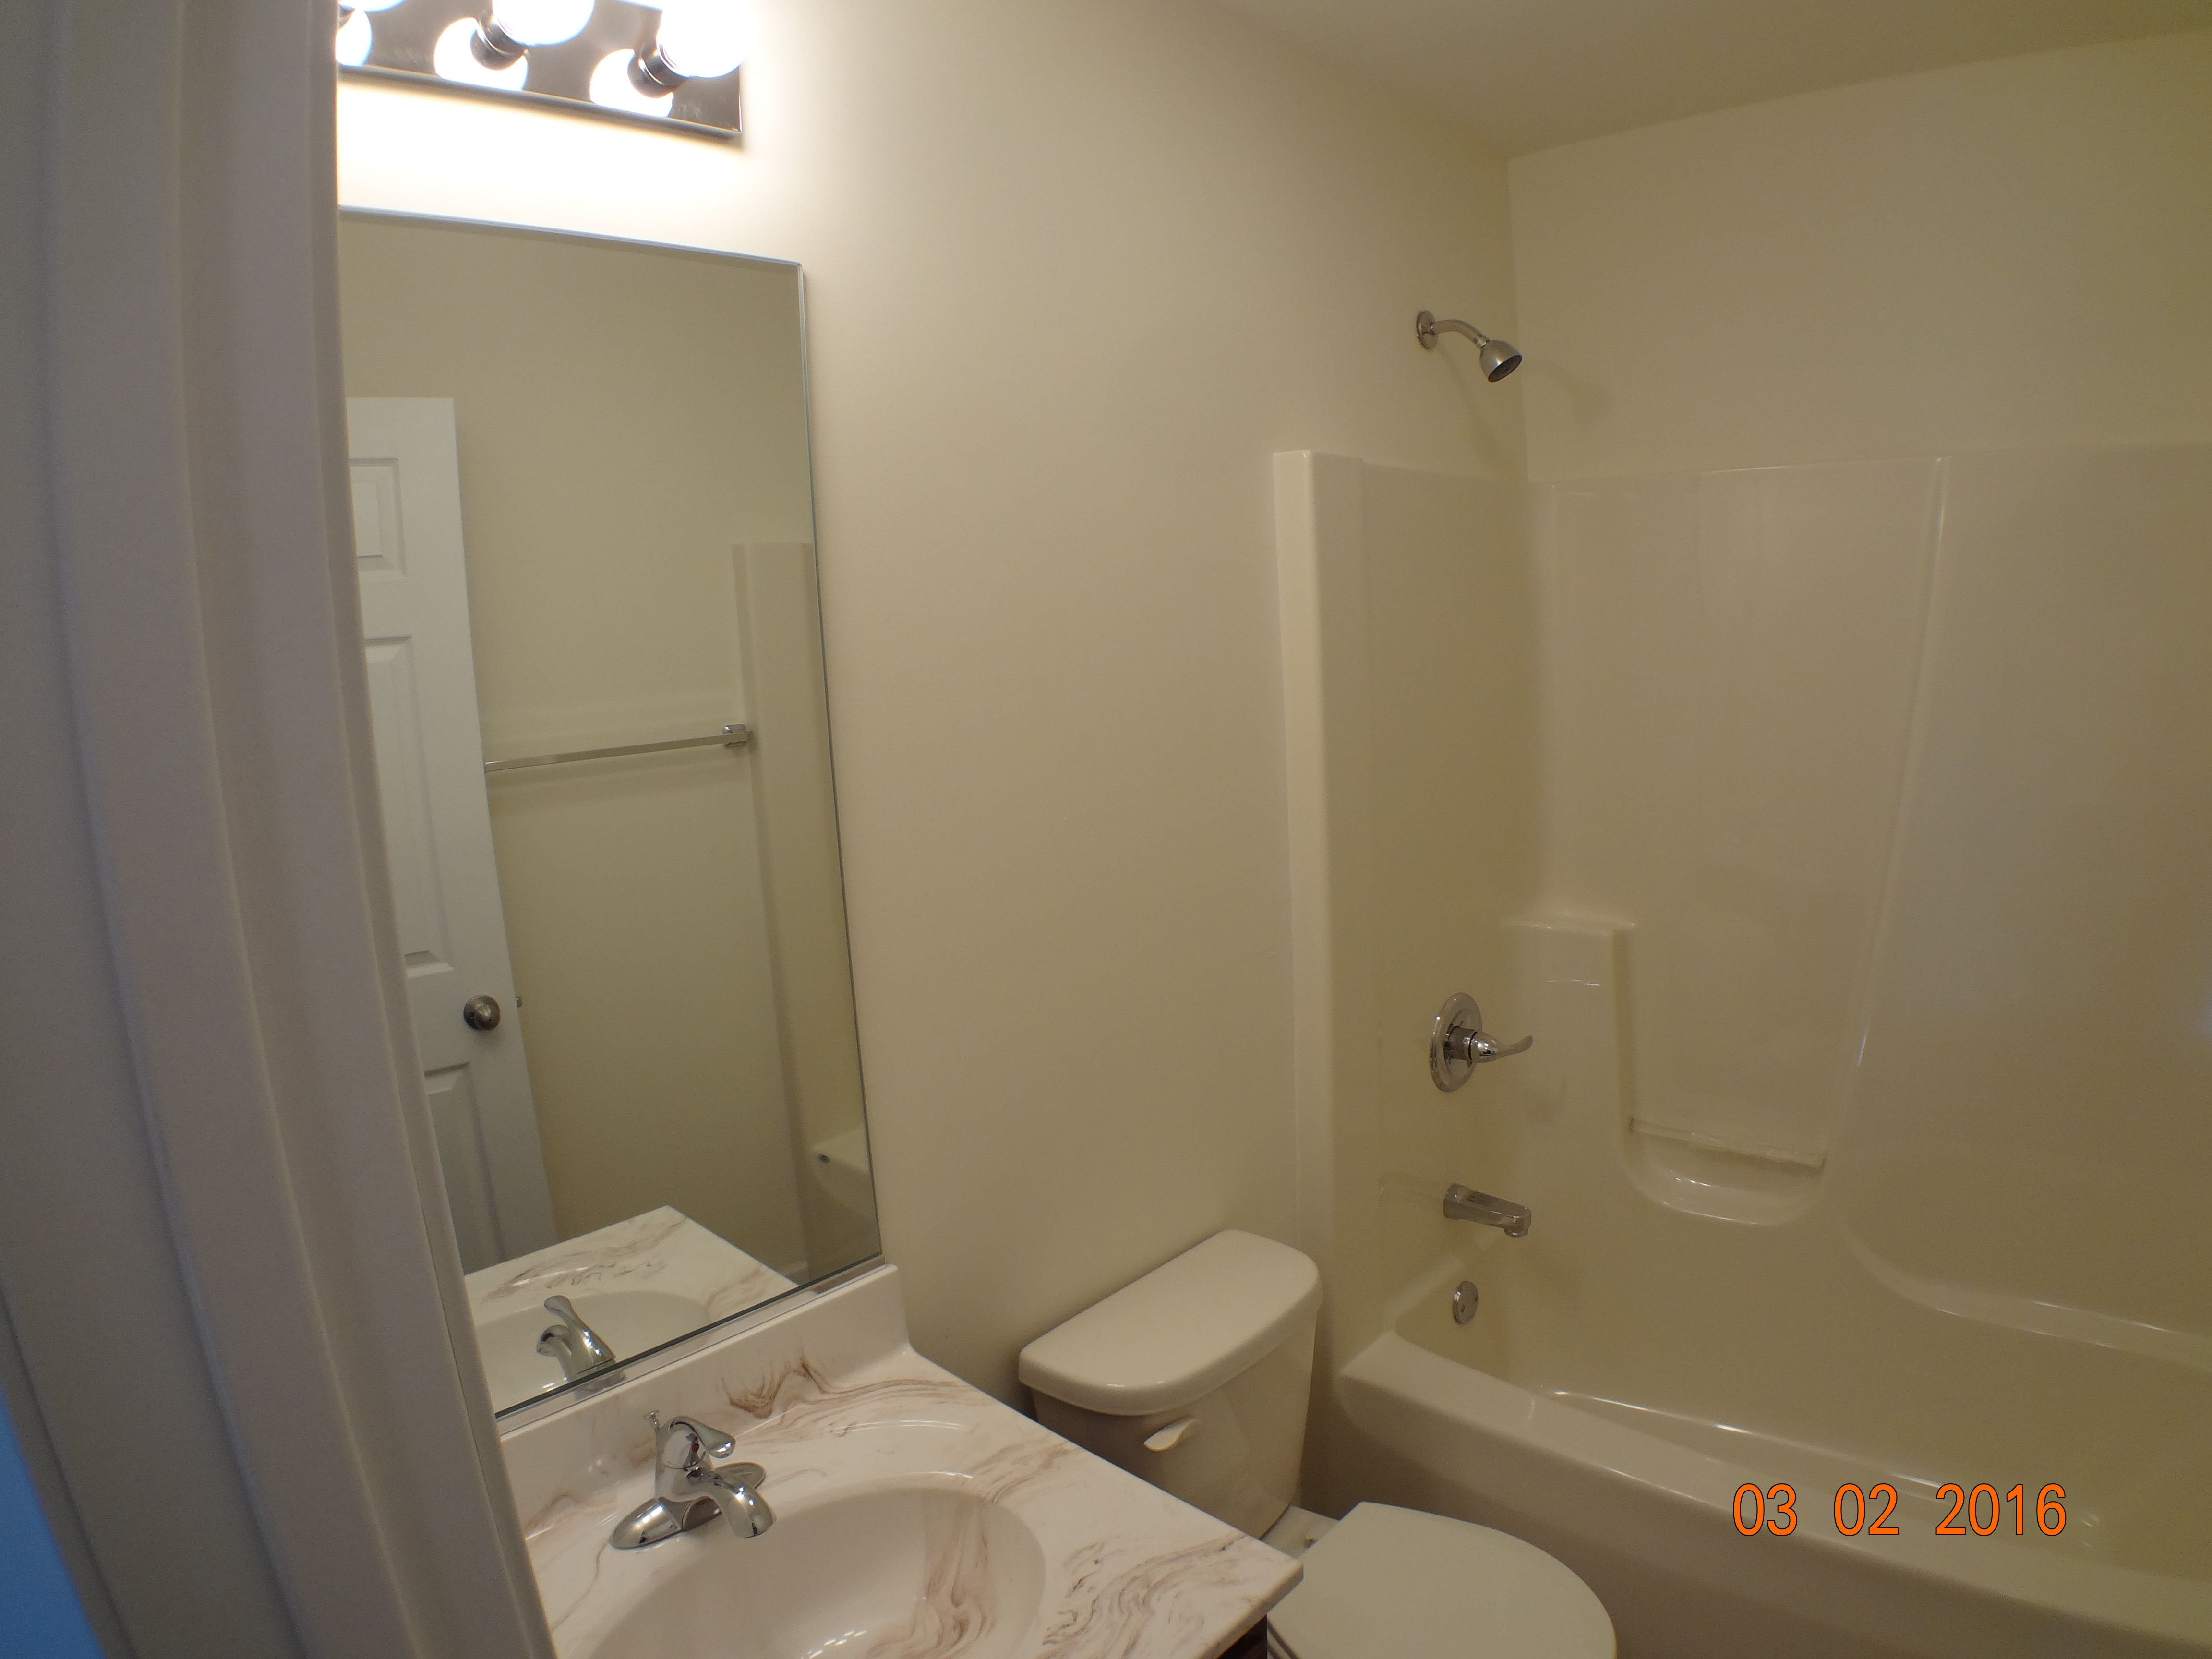 Bathroom featured in the Auburn II By Accent Homes Inc. in Gary, IN